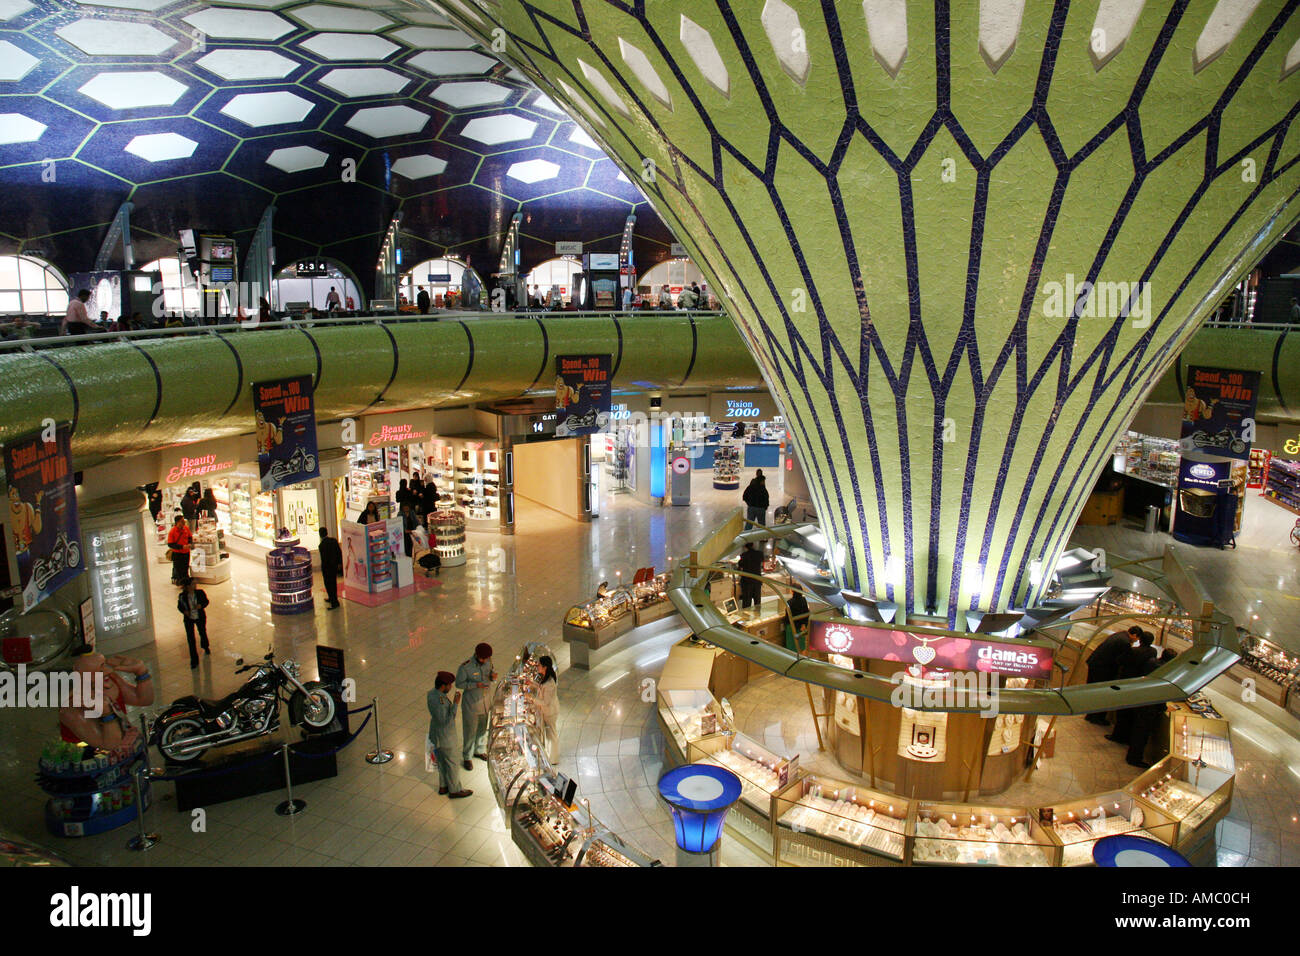 Abu dhabi airport terminal interior uae stock photo for International decor company abu dhabi